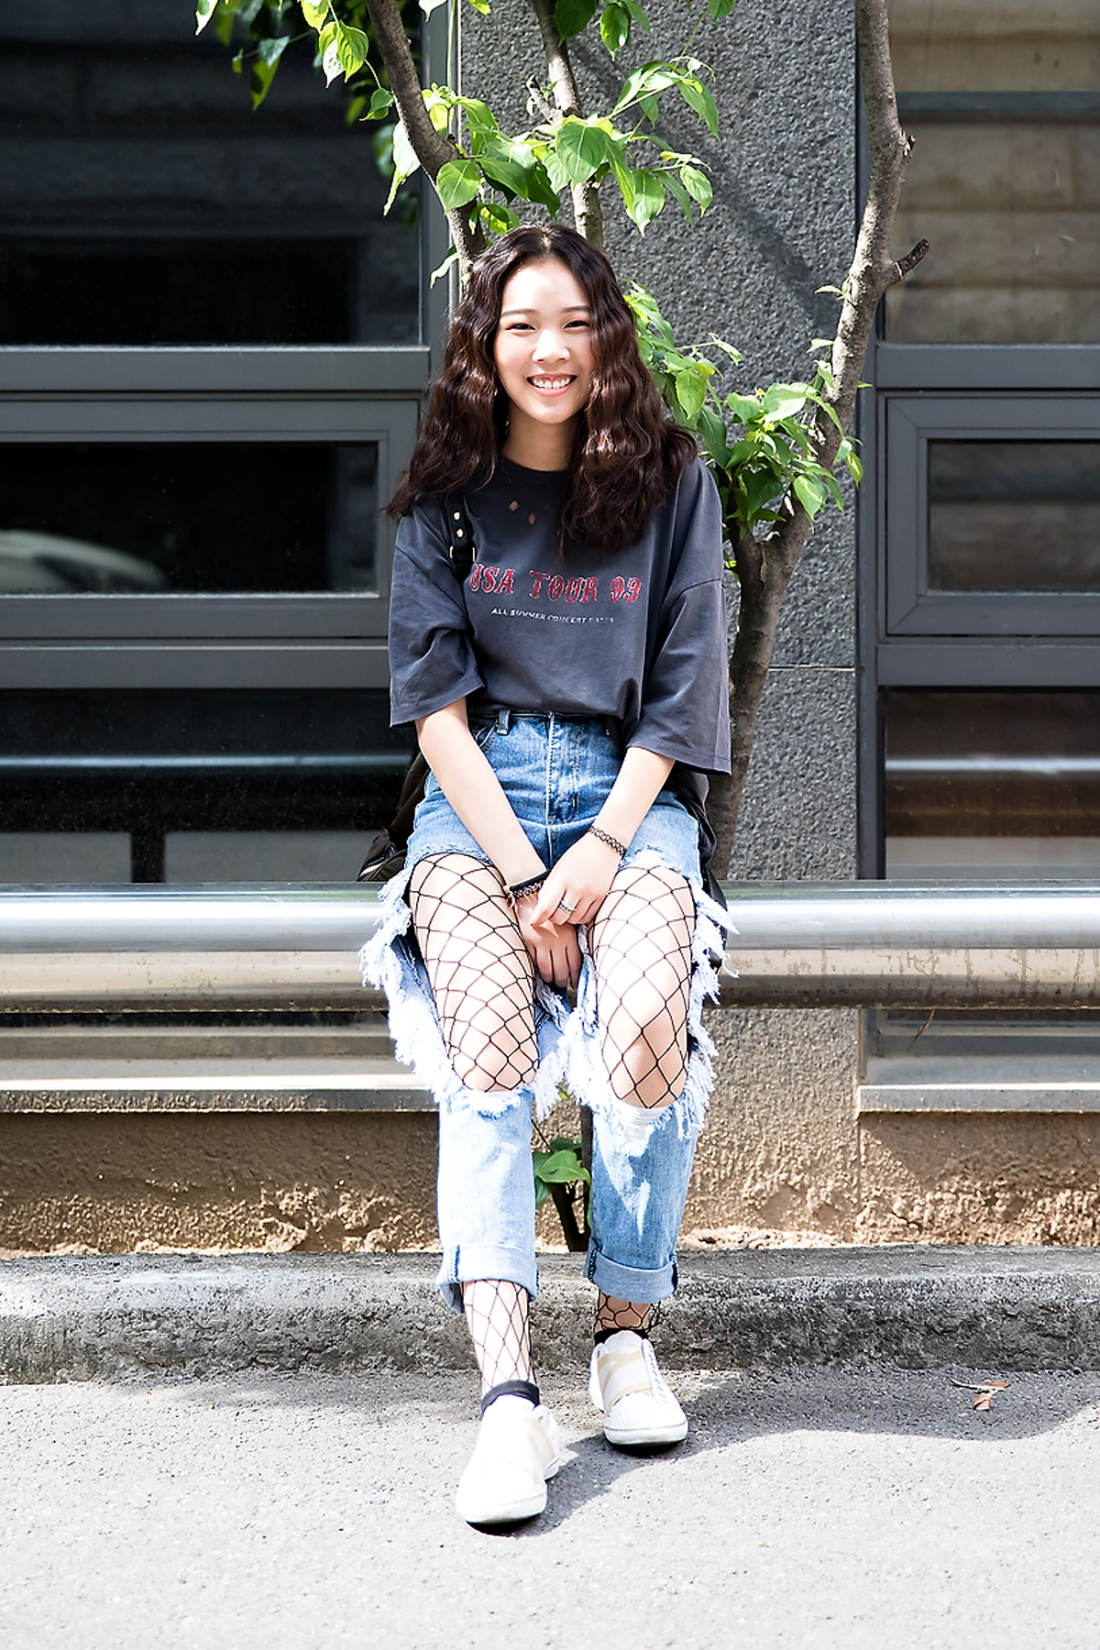 Proud, Street Fashion 2017 in Seoul.jpg